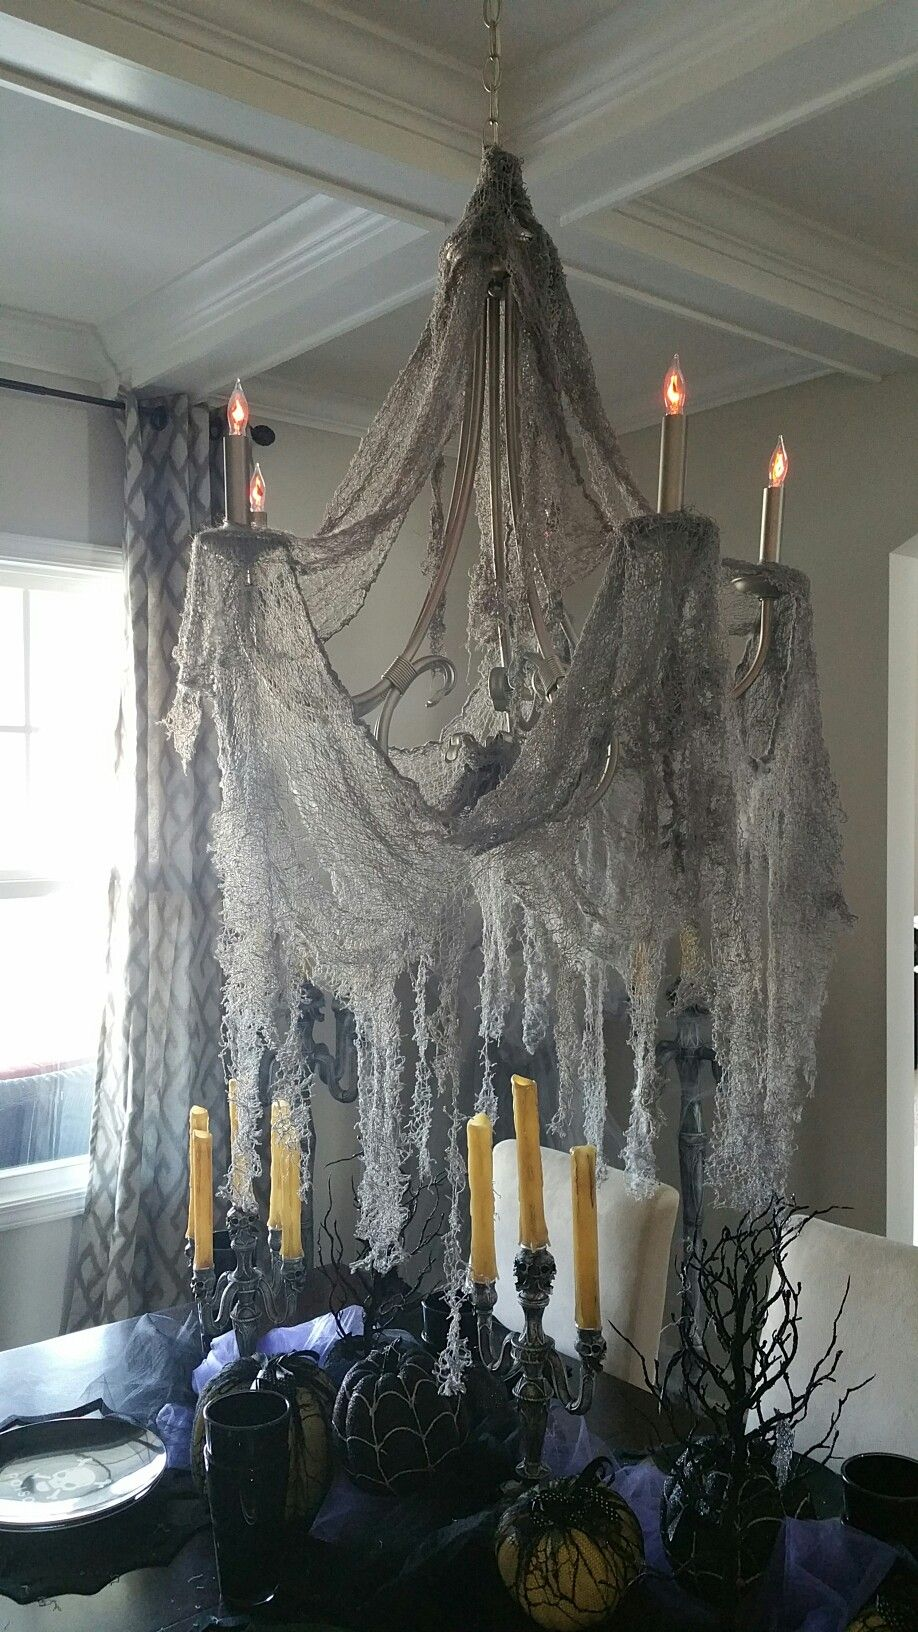 gray creepy cloth and flickering light bulbs | evil soul studios in